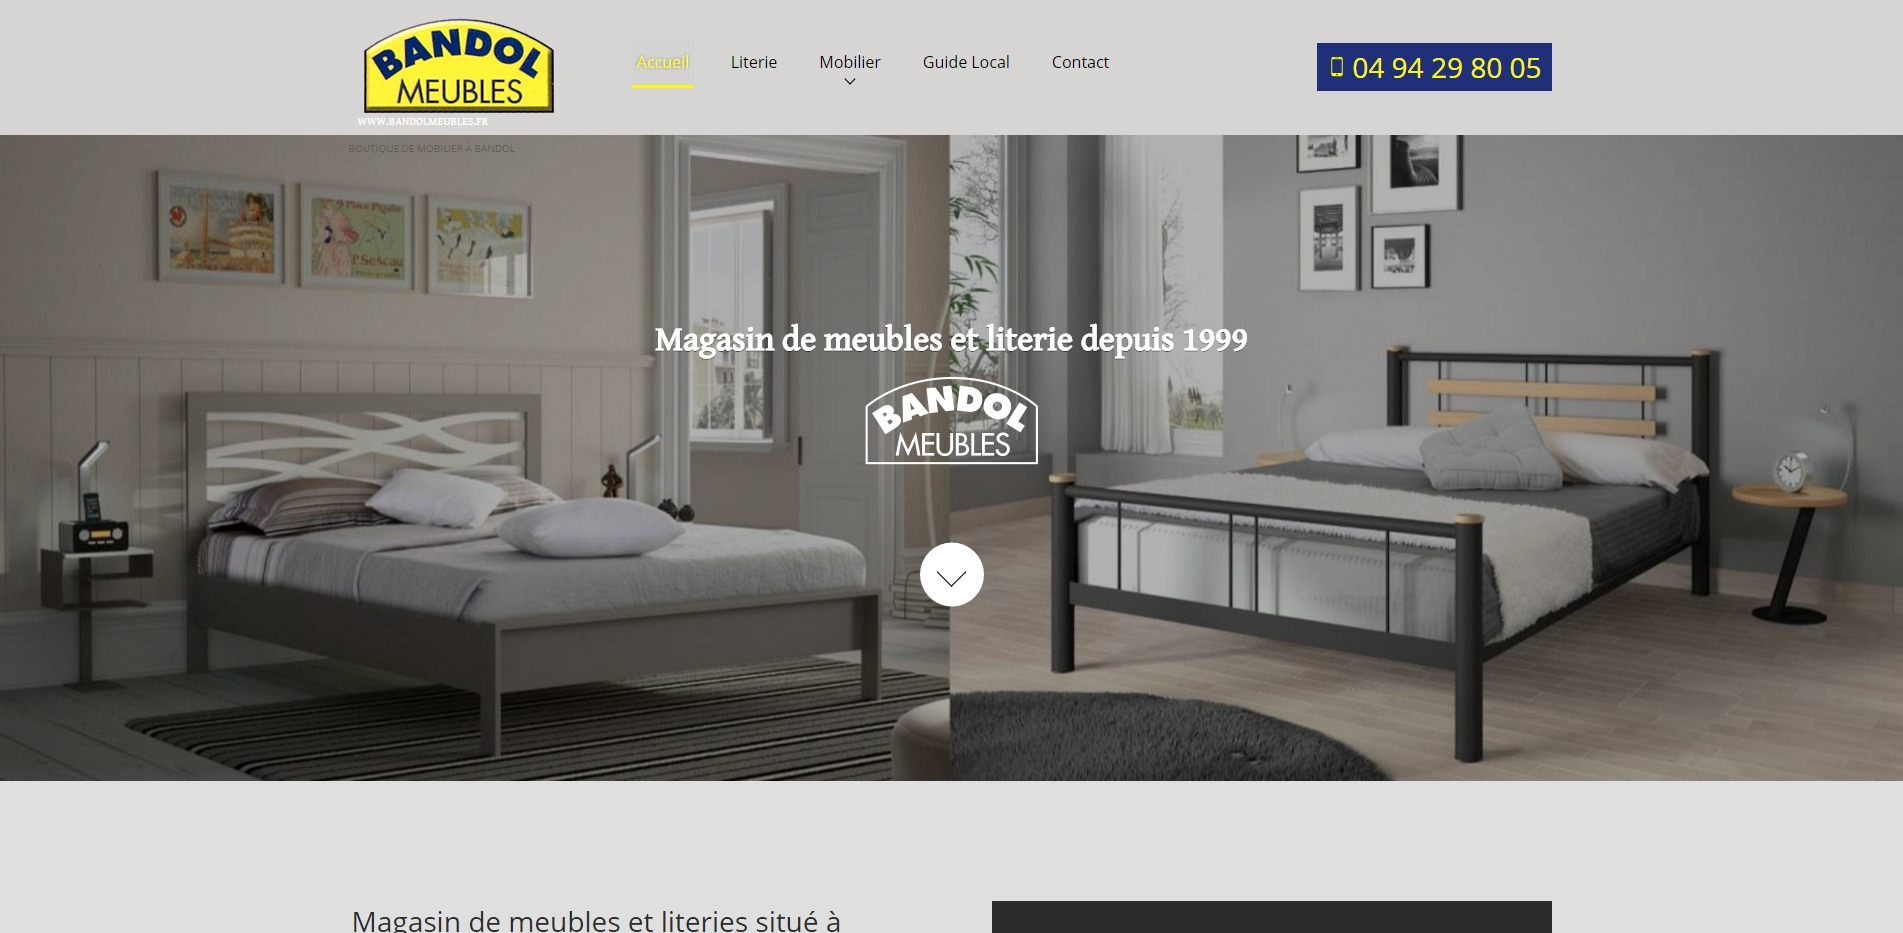 magasin de meubles bandol bandol meubles agence web marseille jalis. Black Bedroom Furniture Sets. Home Design Ideas